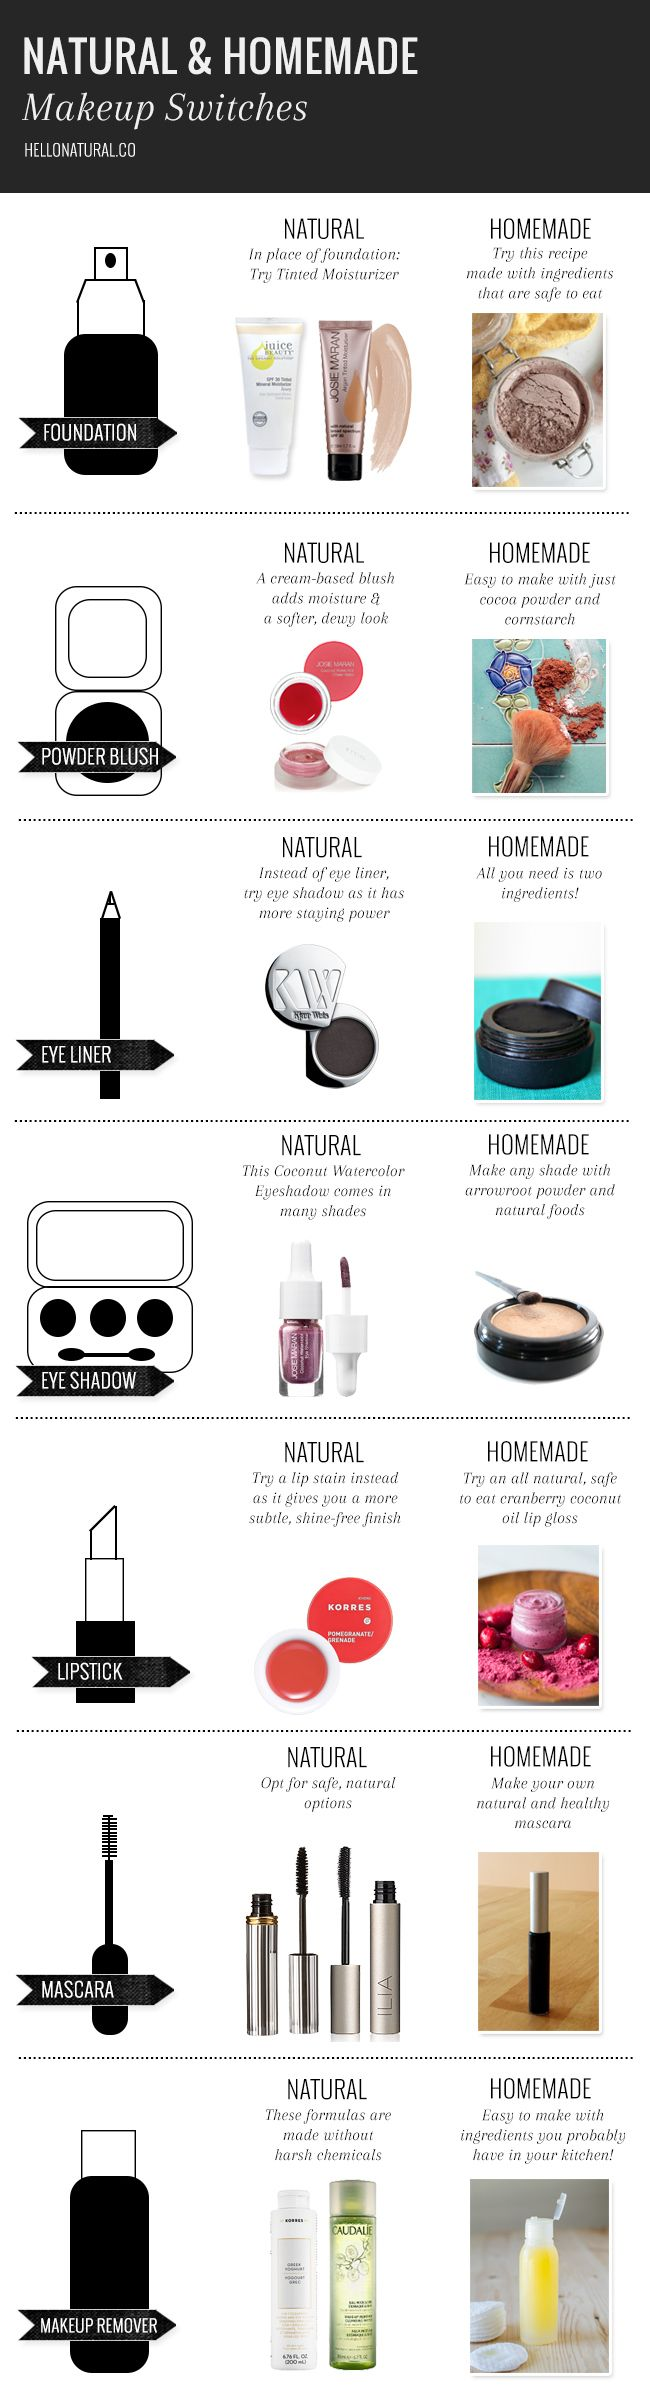 7 Natural and Homemade Makeup Alternatives